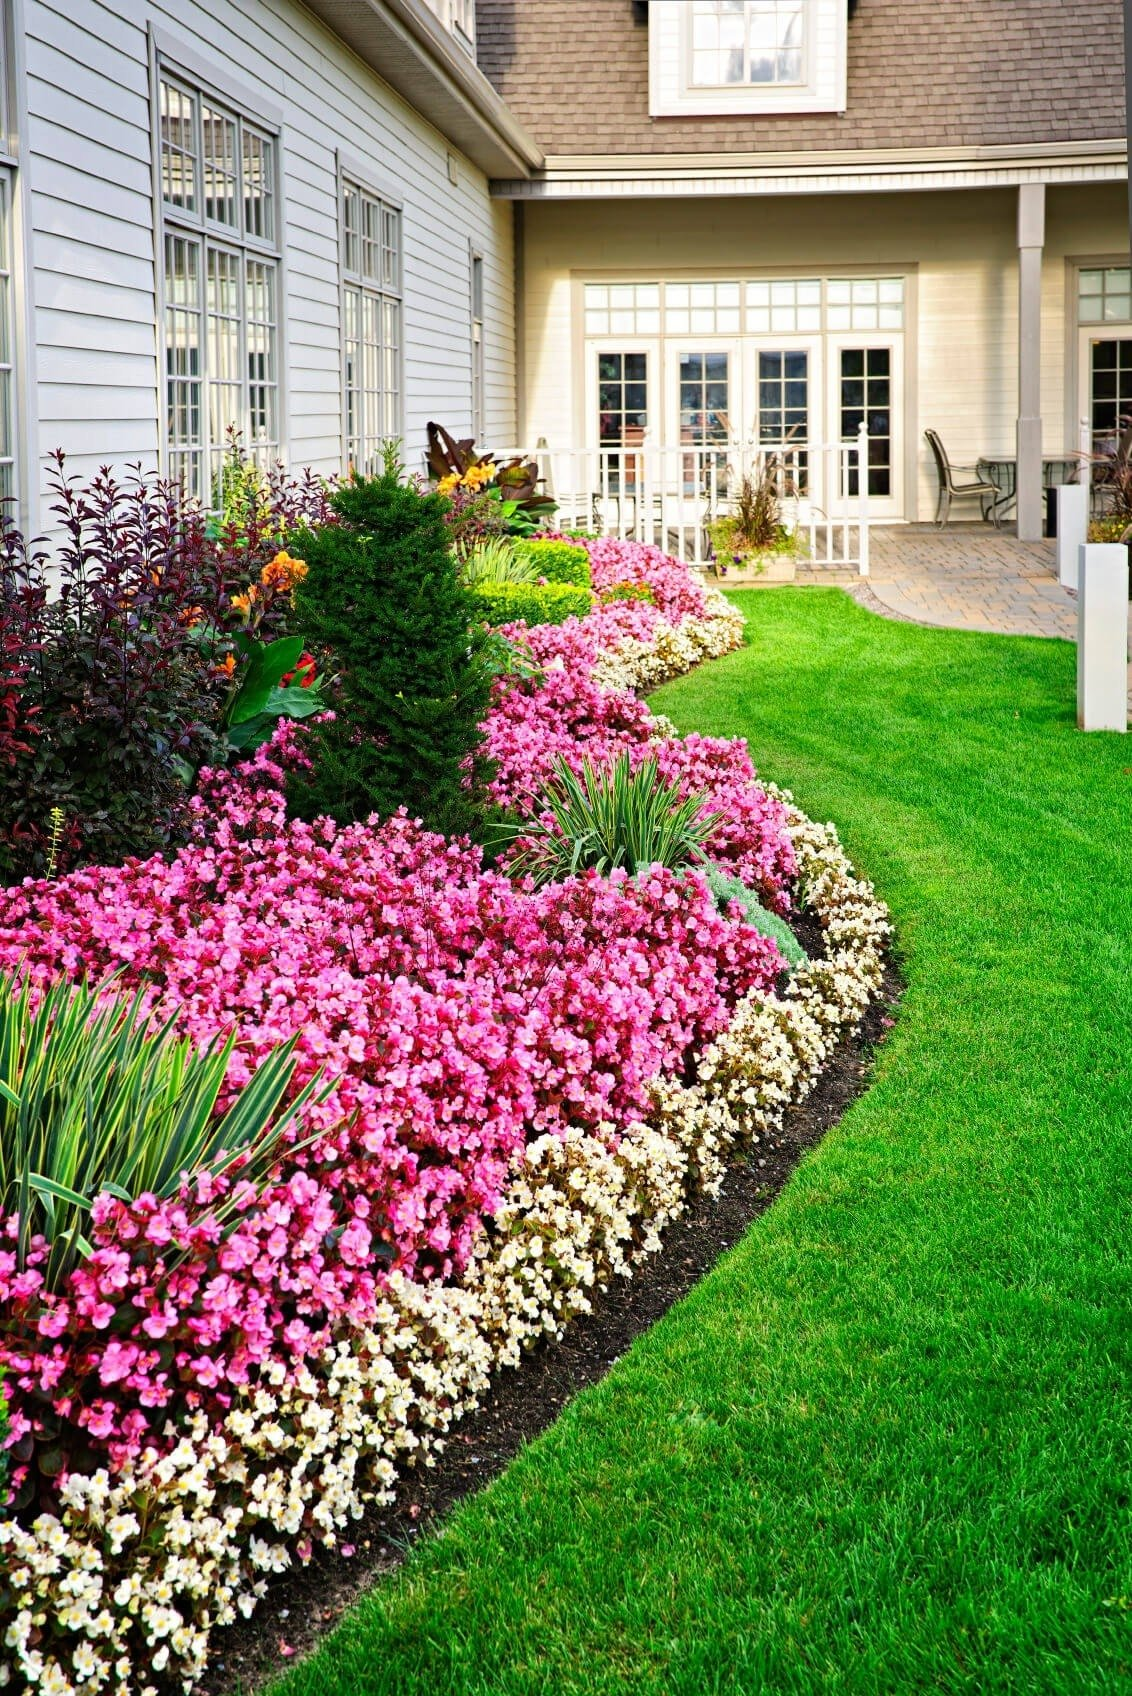 10 Spectacular Front Yard Flower Bed Ideas small flower garden design attractive 101 front yard garden ideas 2020